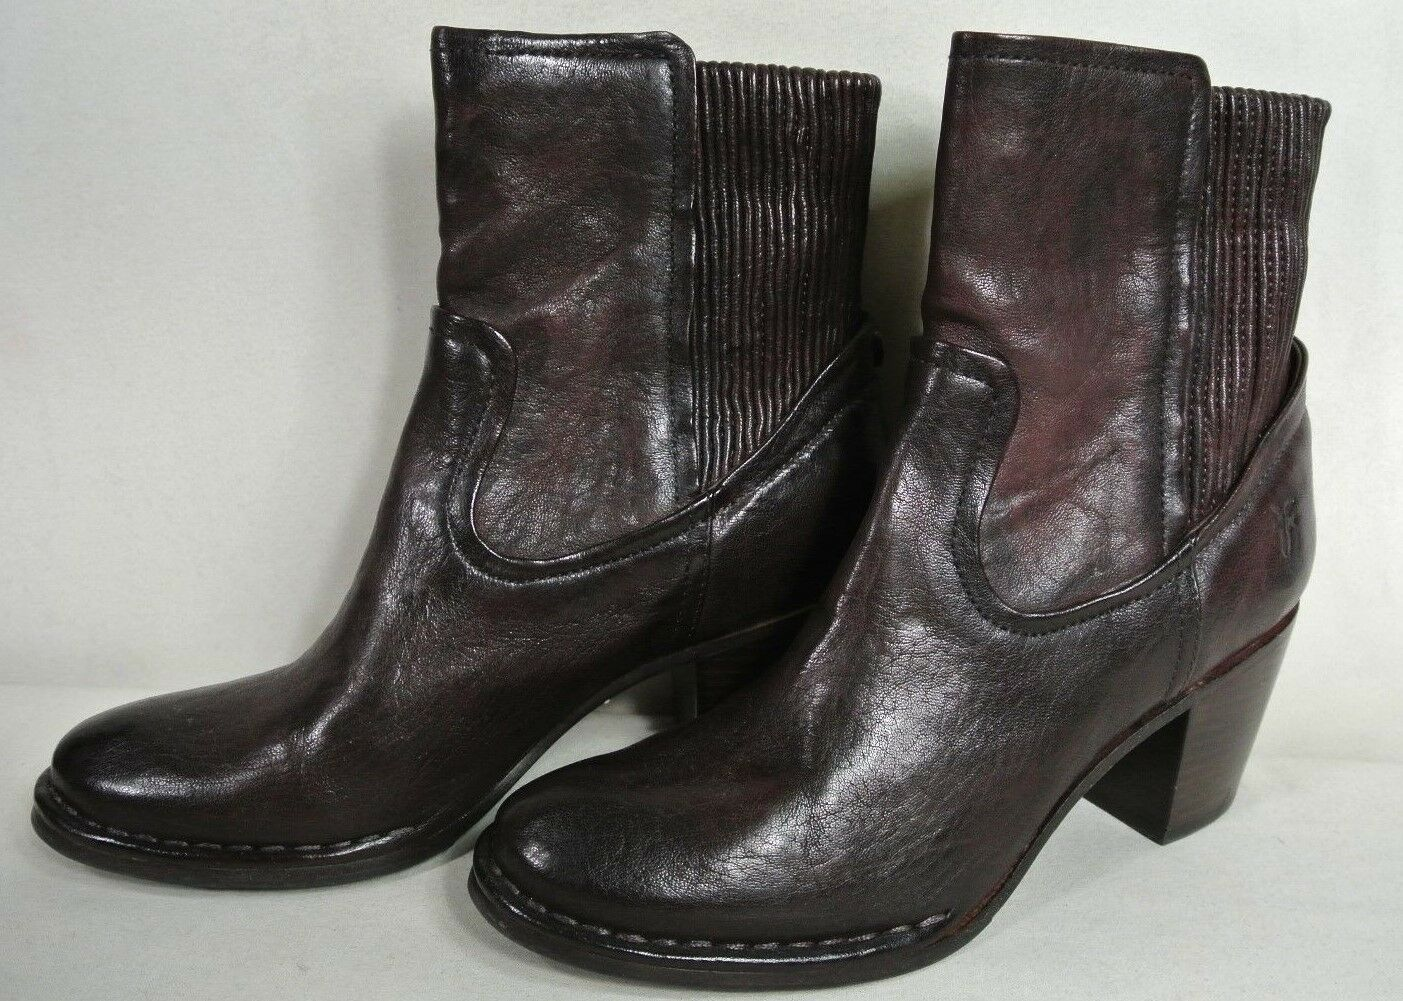 NEW w o Box Frye Brown Melissa Scrunch Scrunch Scrunch Short Boots - Size 7.5 98cb6f